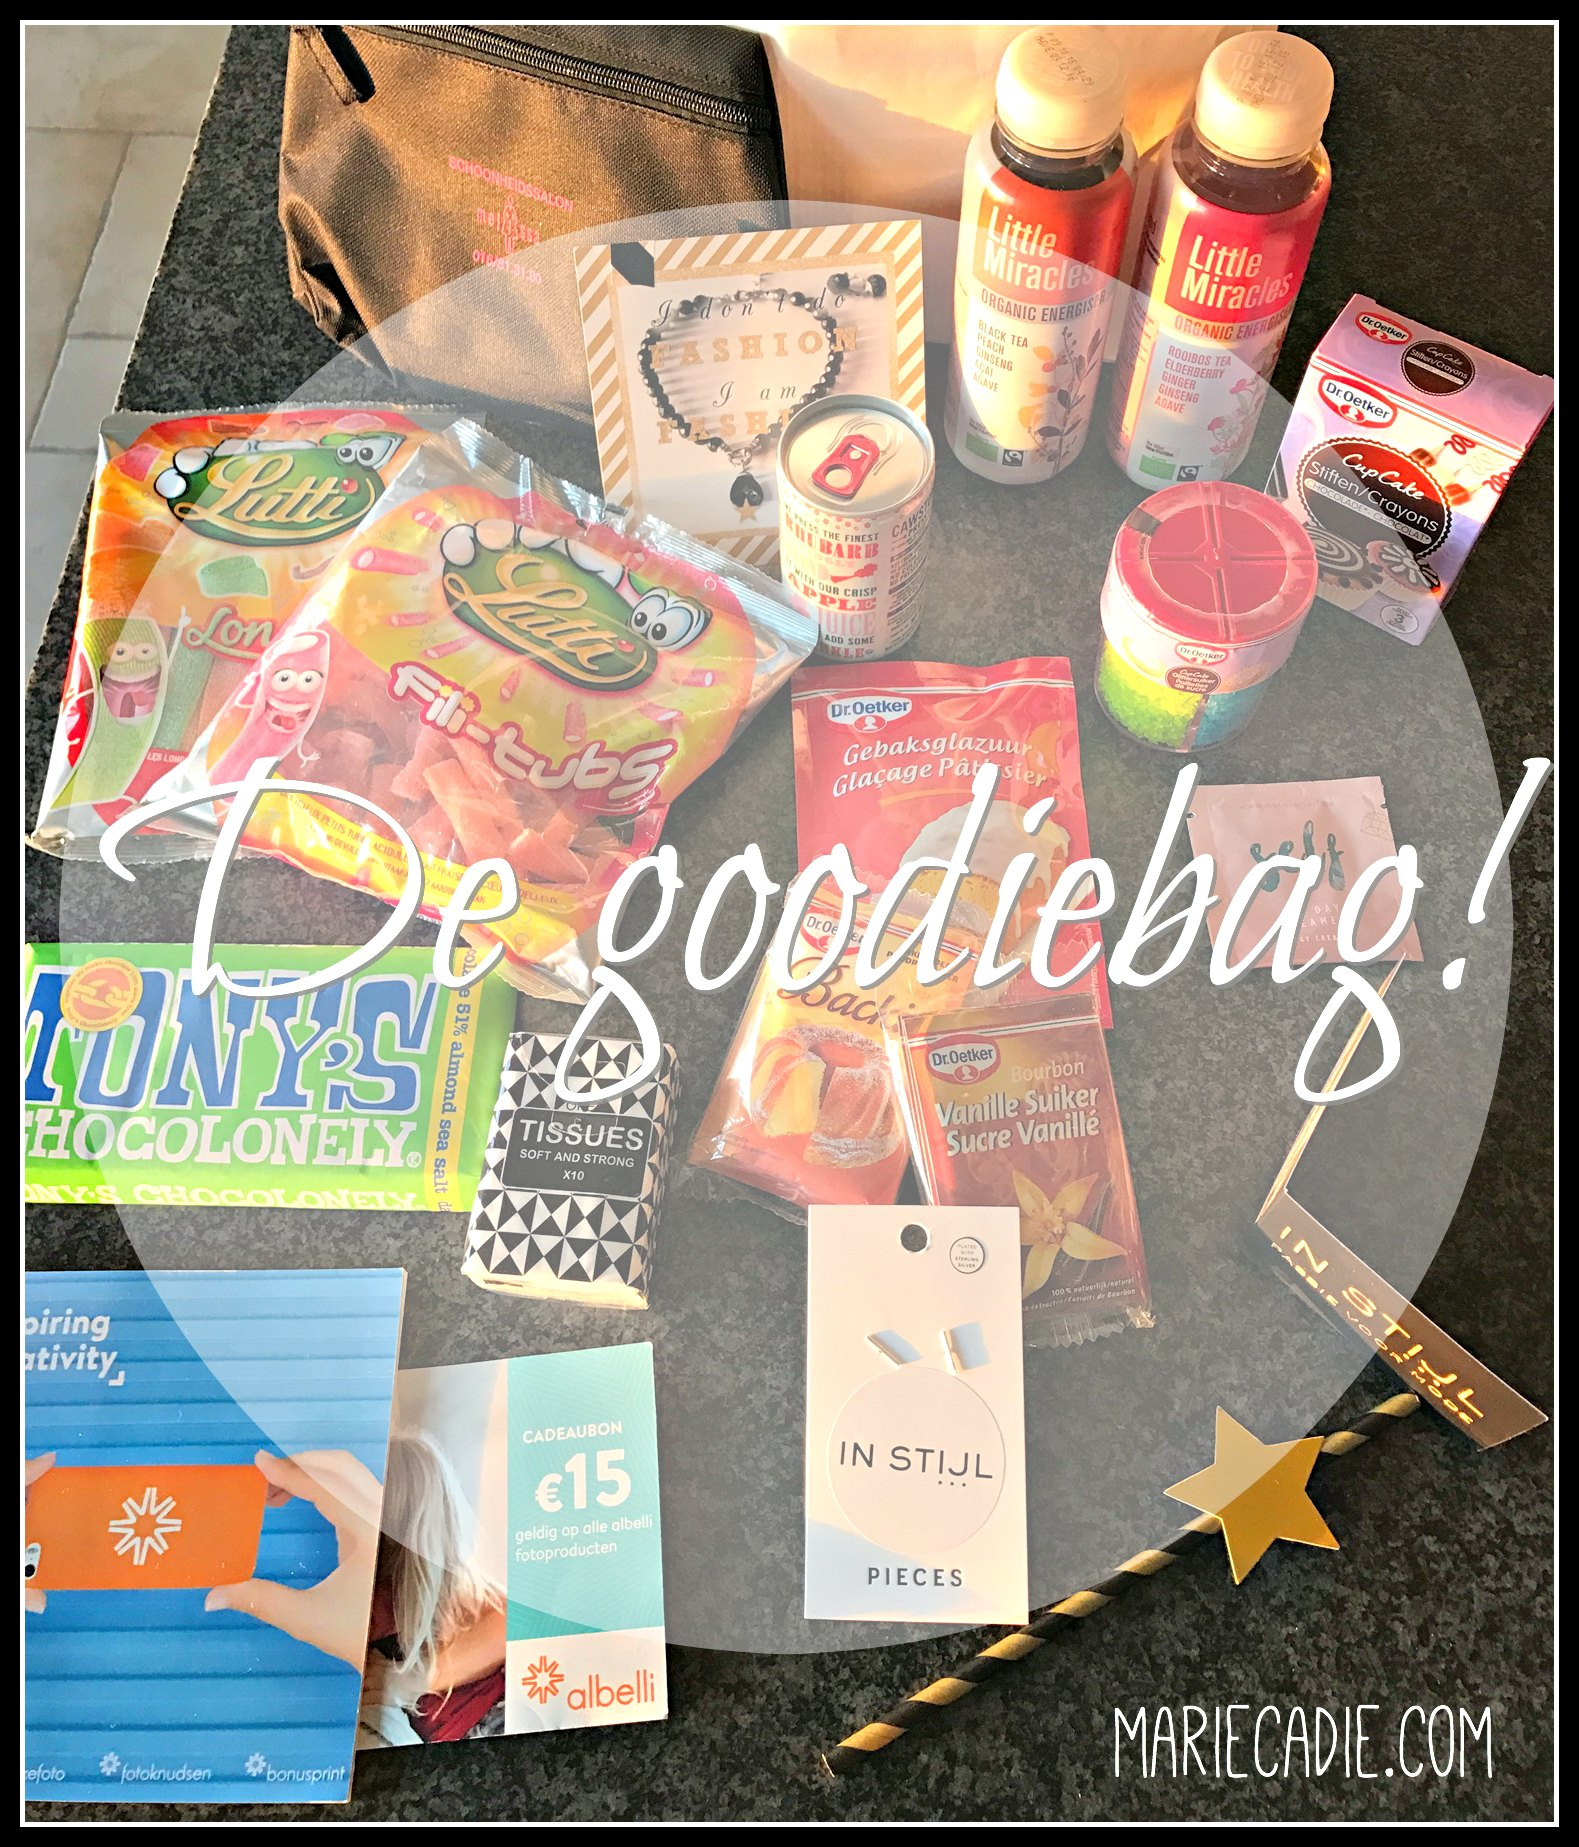 mariecadie-com-handlettering-workshop-goodie-bag